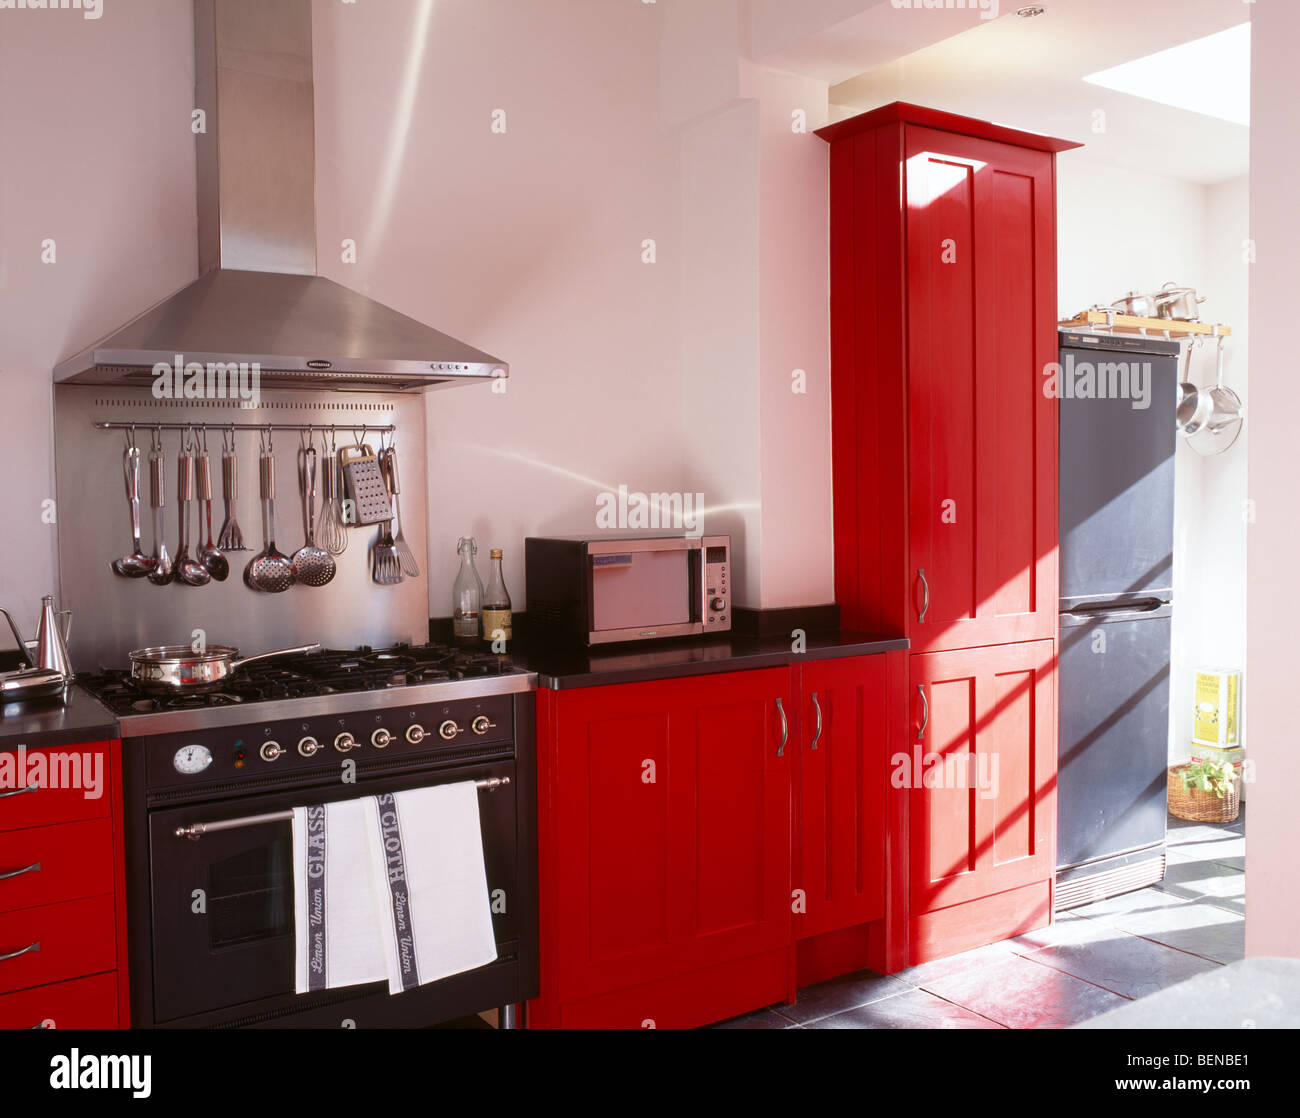 Modern Kitchen Set Red: Microwave Oven Microwave Ovens Microwaves Stock Photos